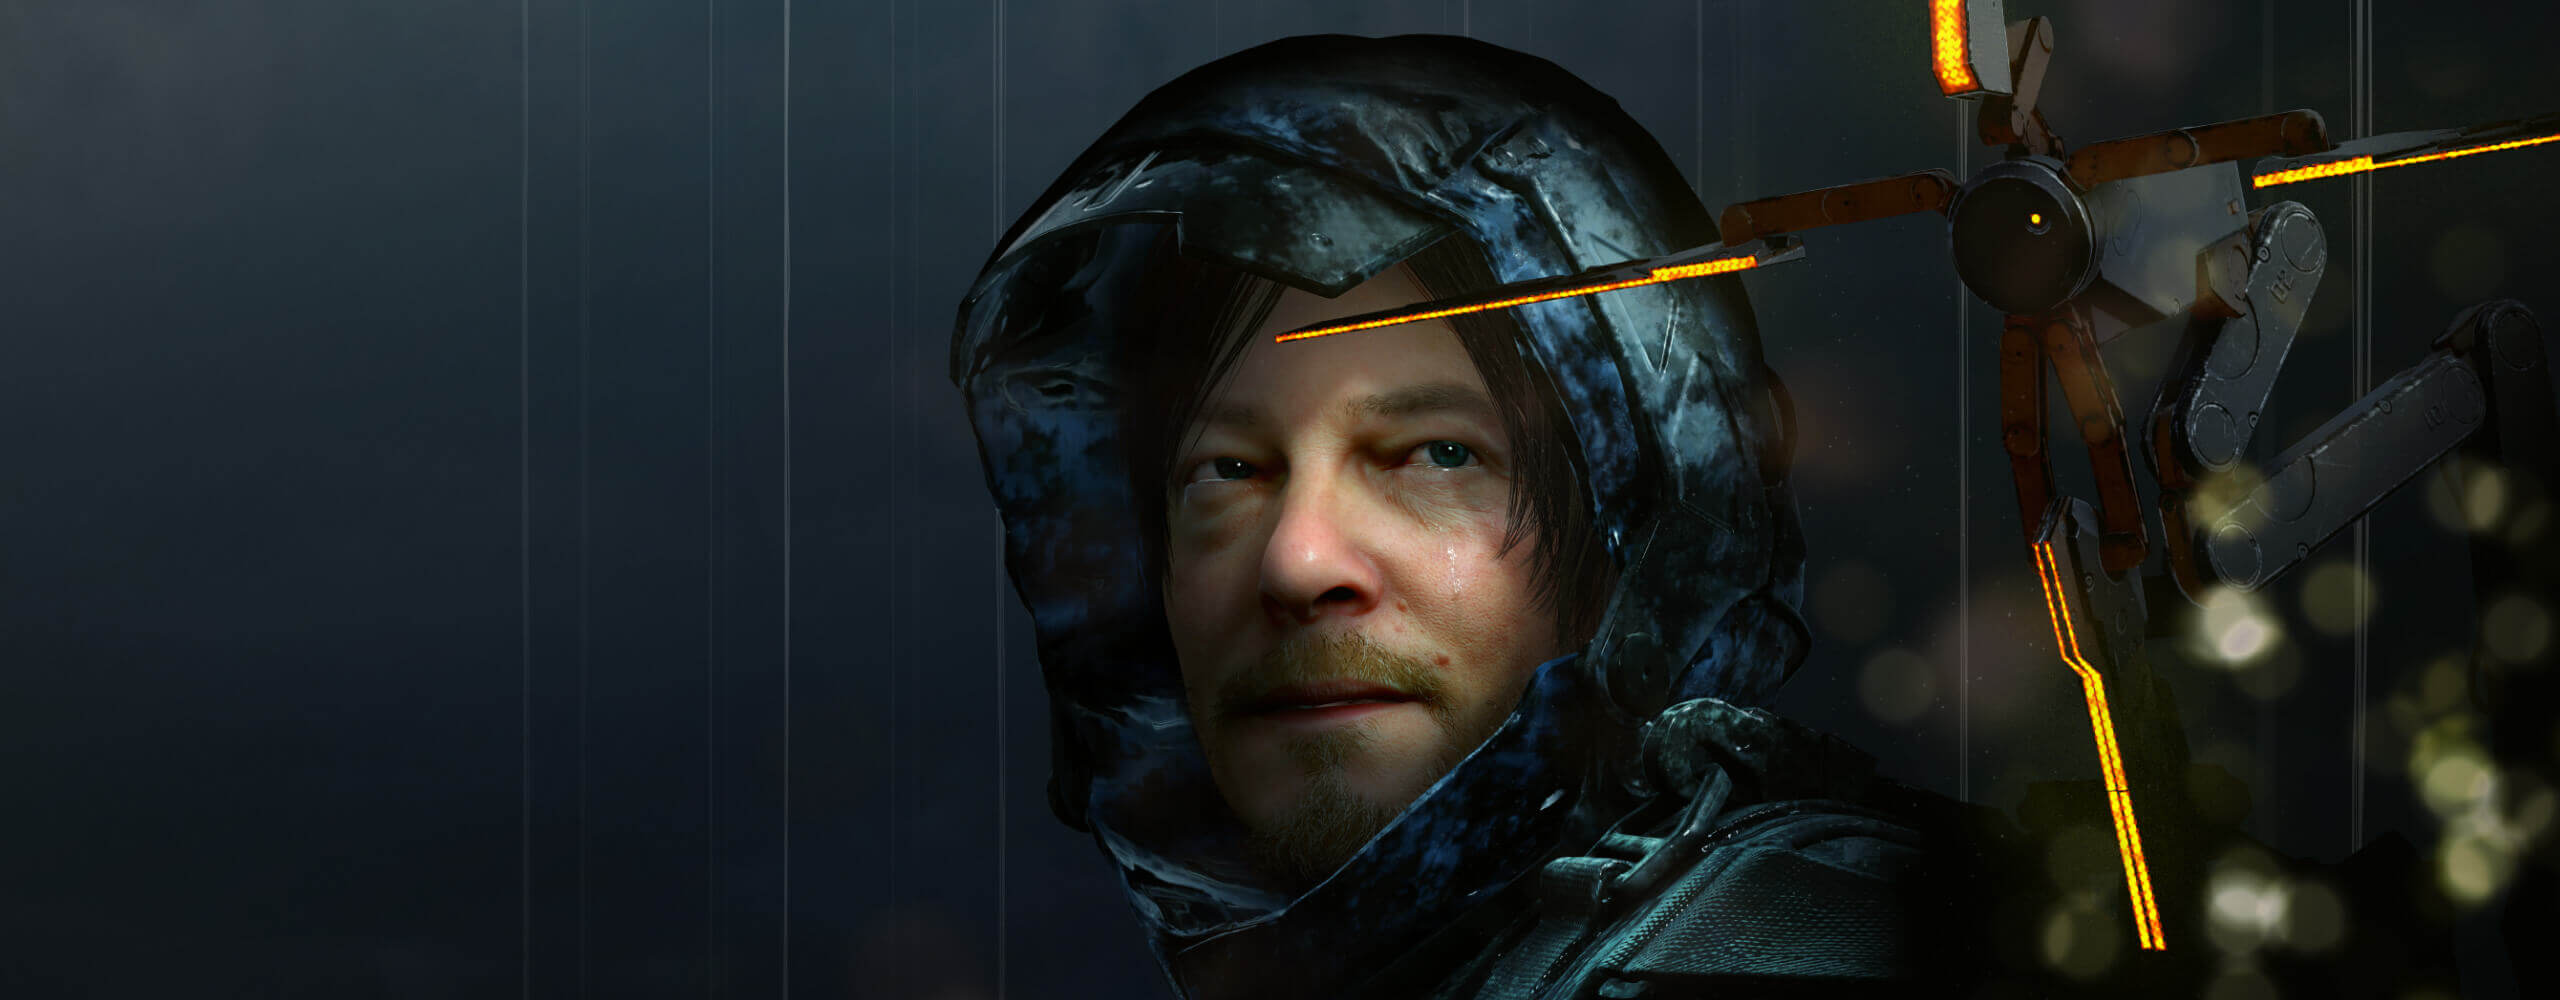 DEATH STRANDING Coming to Steam and the Epic Games Store on June 2, 2020